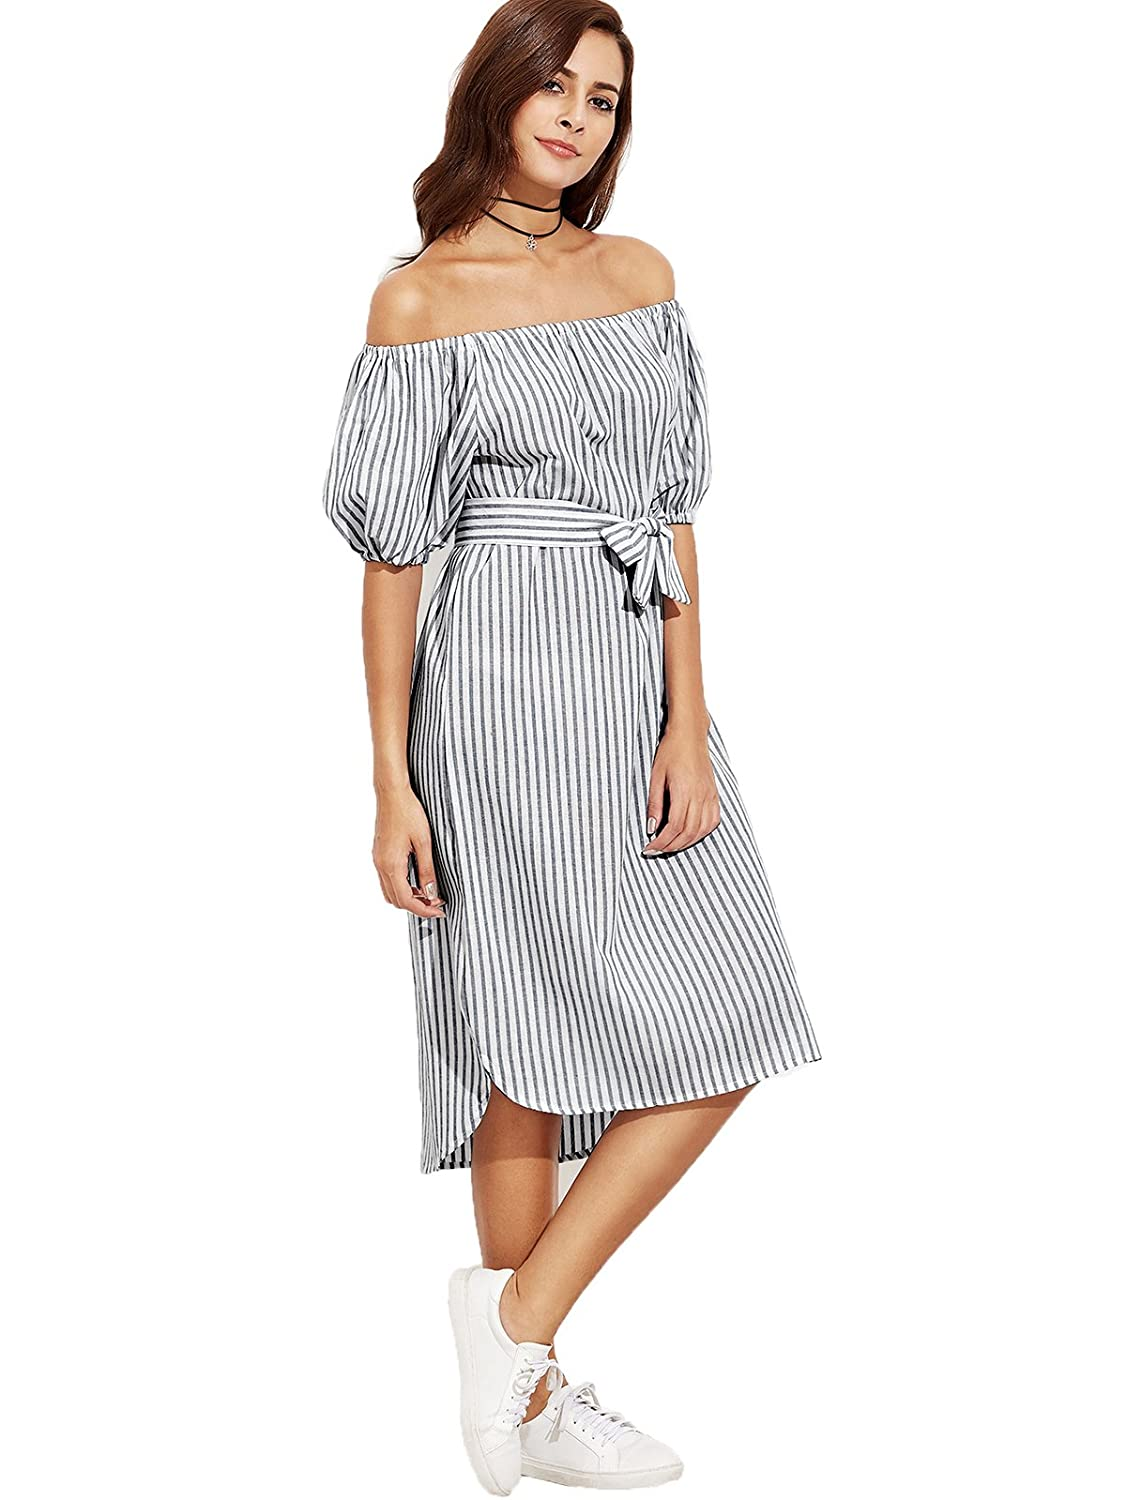 5a05357c56eb Milumia Women s Off The Shoulder Self Tie Dress (One Size